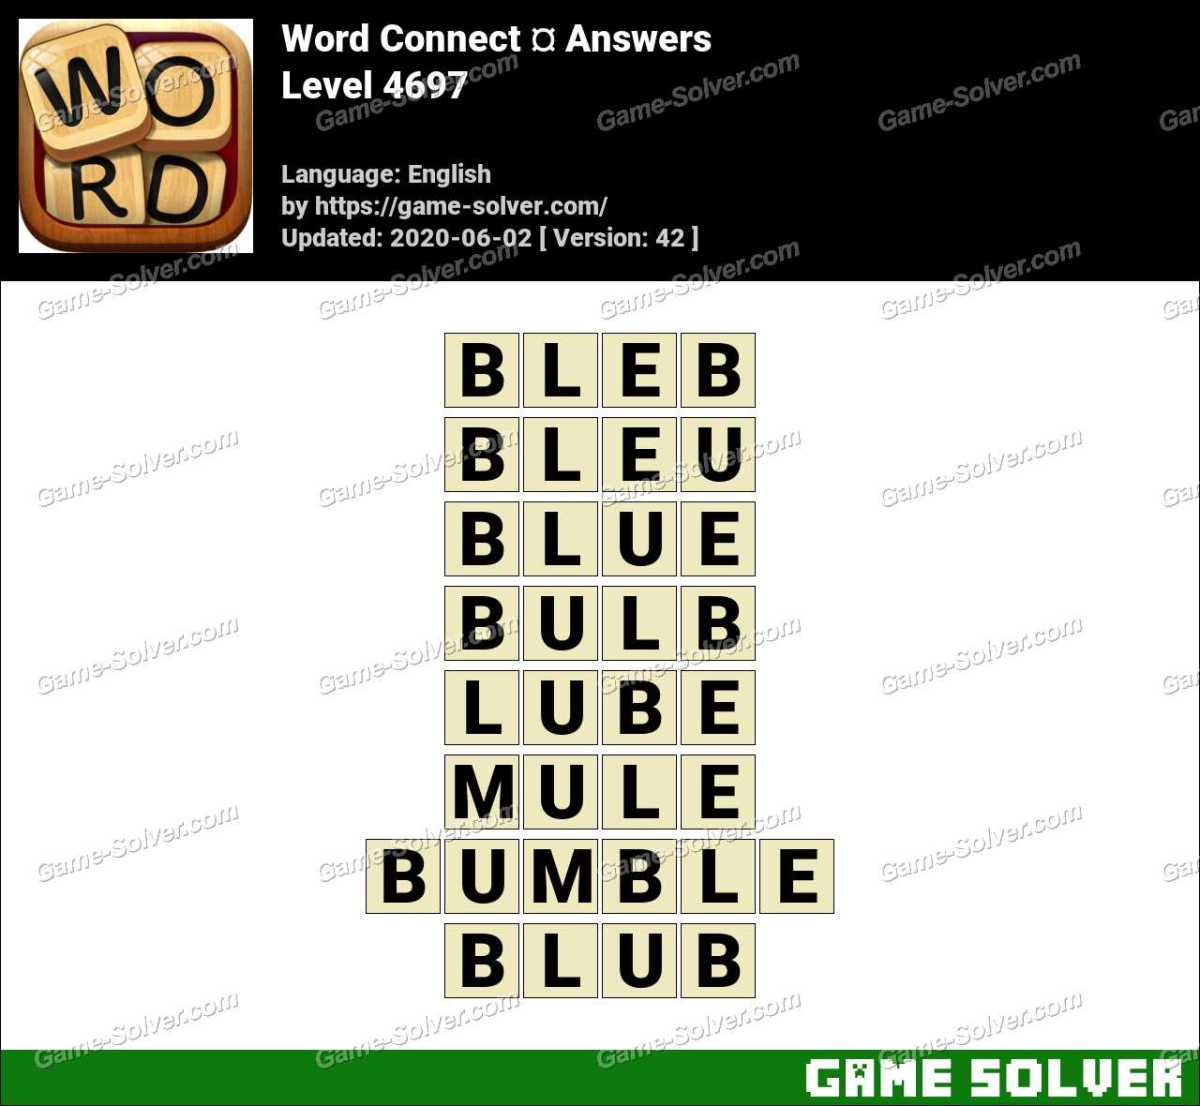 Word Connect Level 4697 Answers